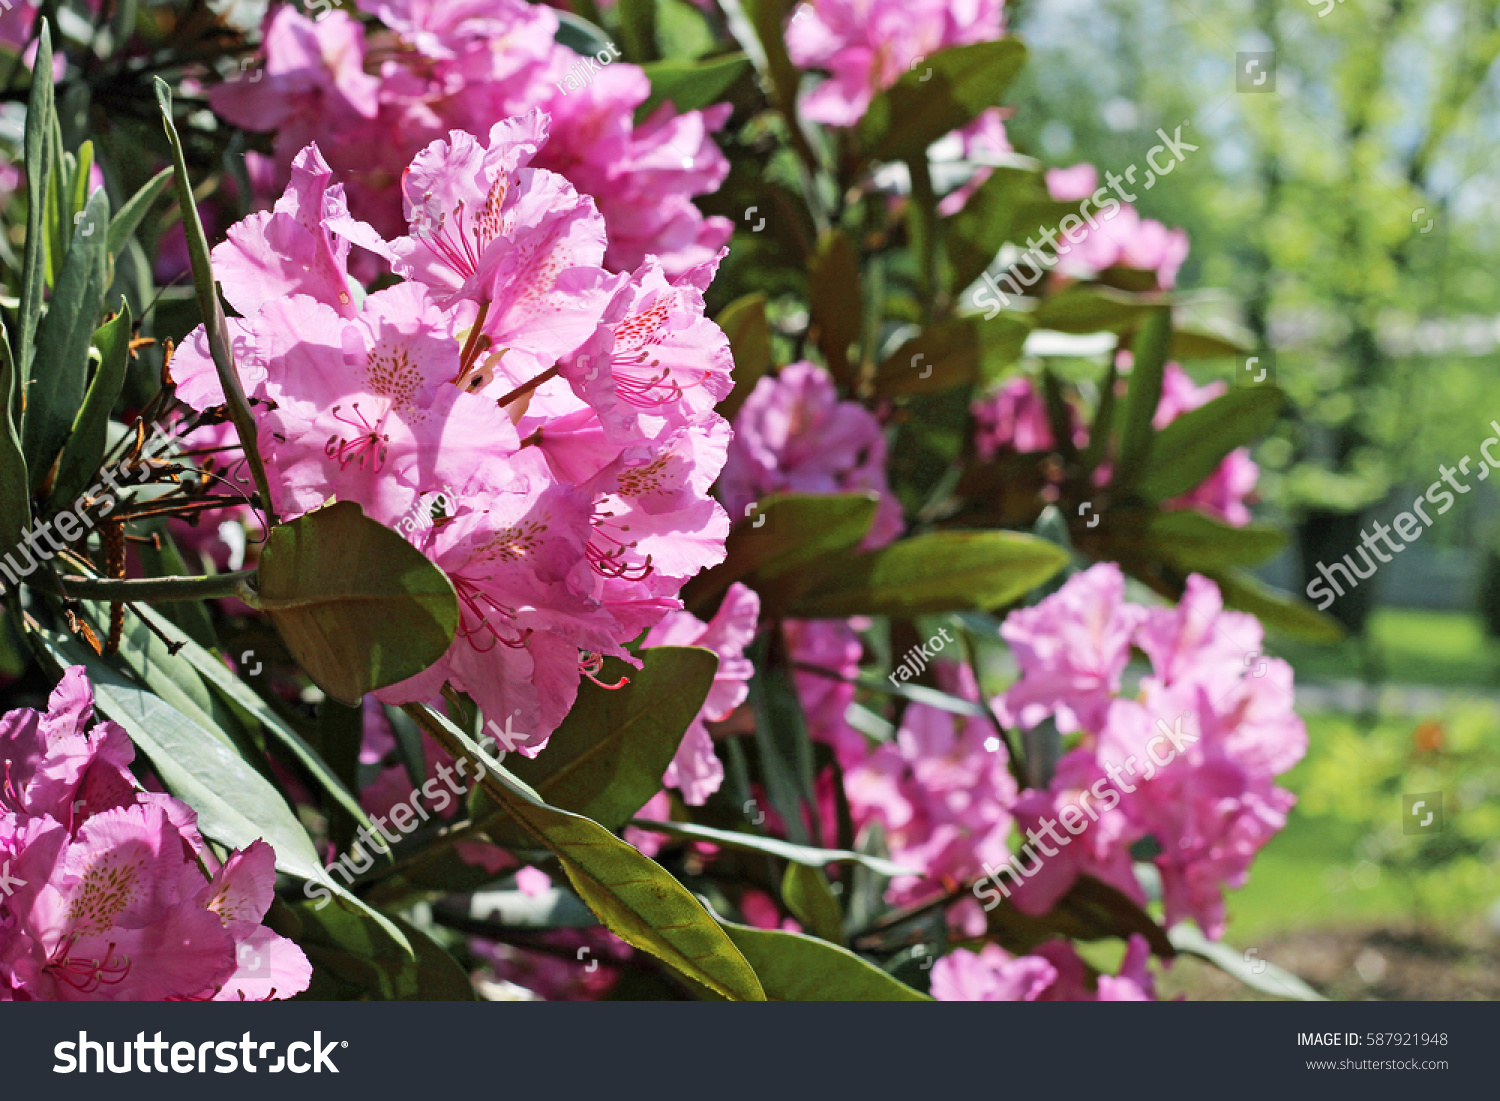 Flowering Branch Of Rhododendron In The Spring Garden Pink Azalea